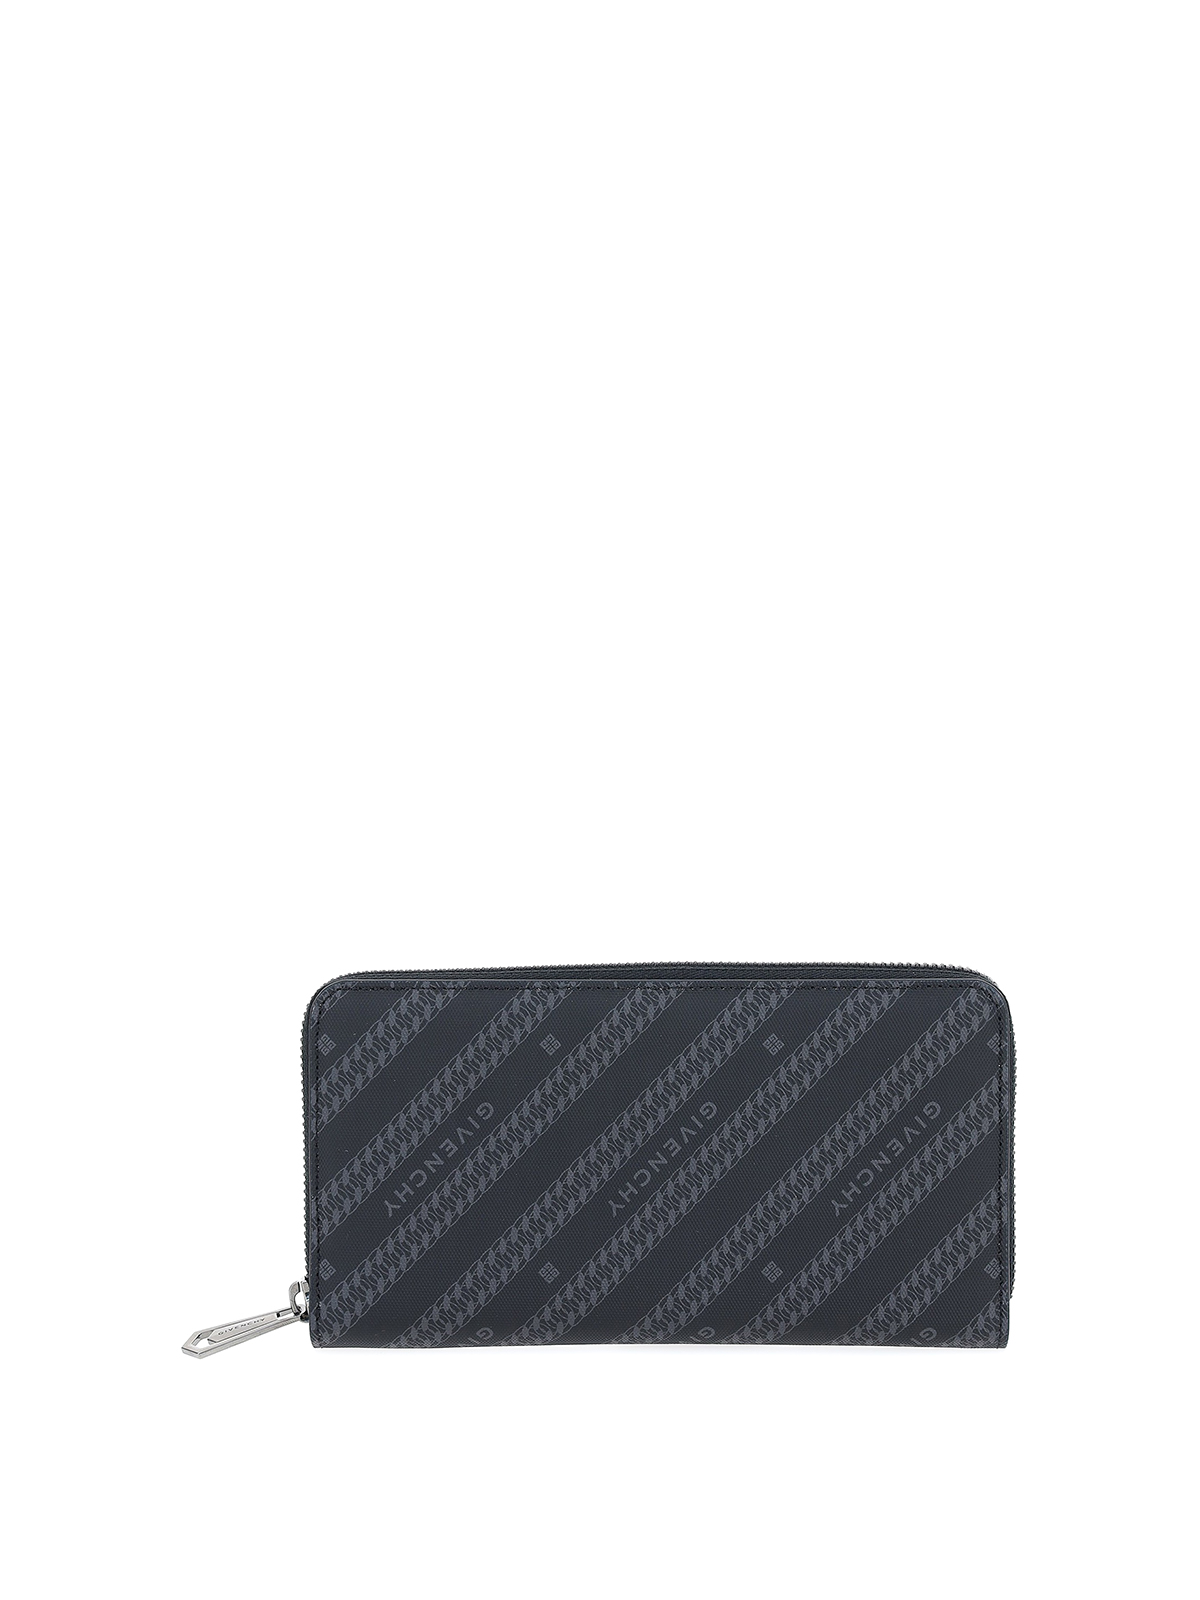 Givenchy Chaine Wallet In Black